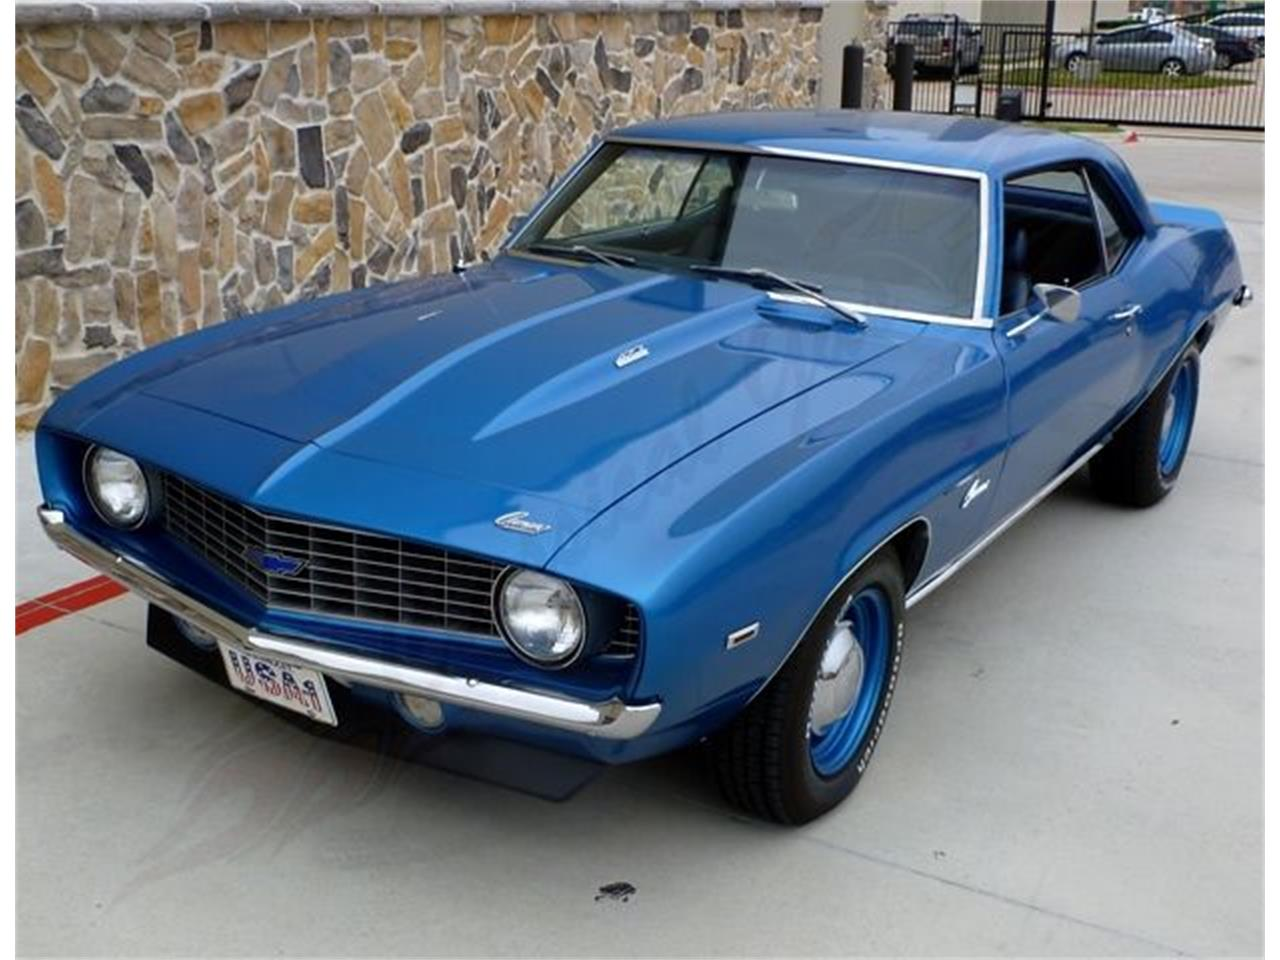 Large Picture of Classic 1969 Chevrolet Camaro - $62,000.00 - KUGL